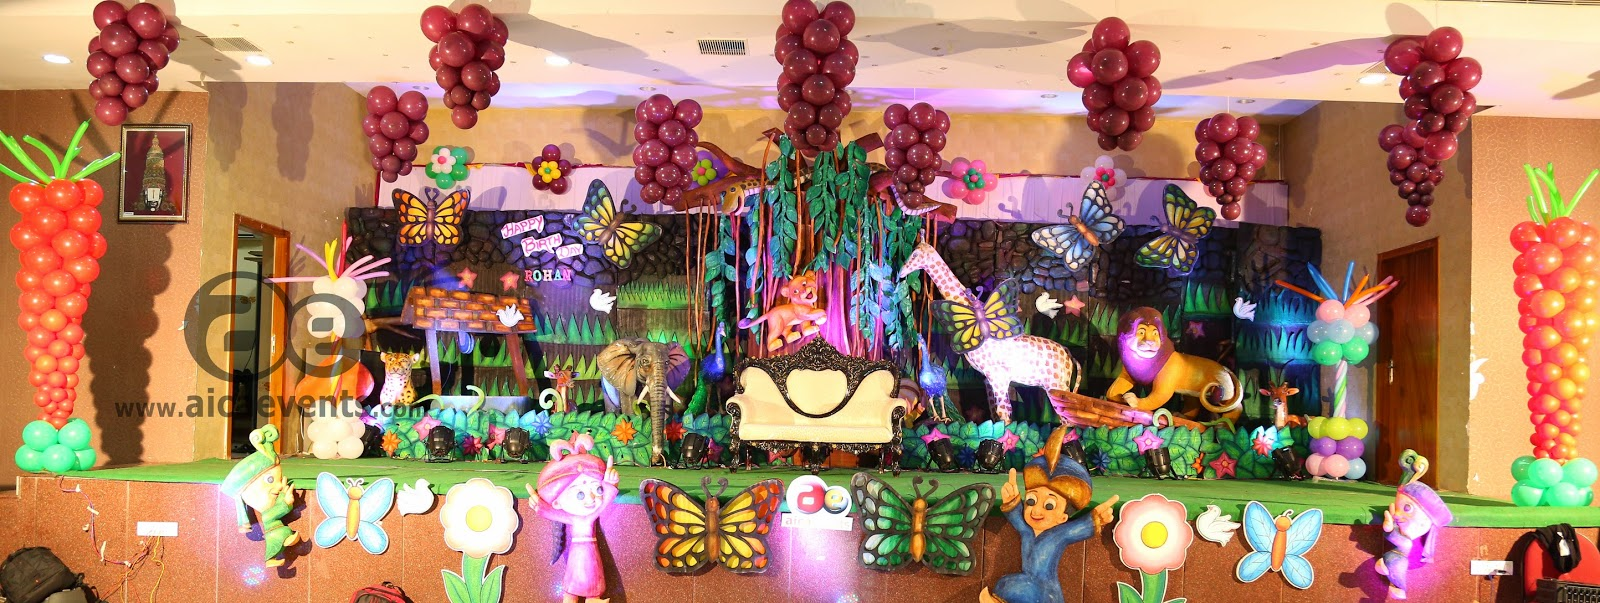 aicaevents: Jungle Theme Birthday party Decorations